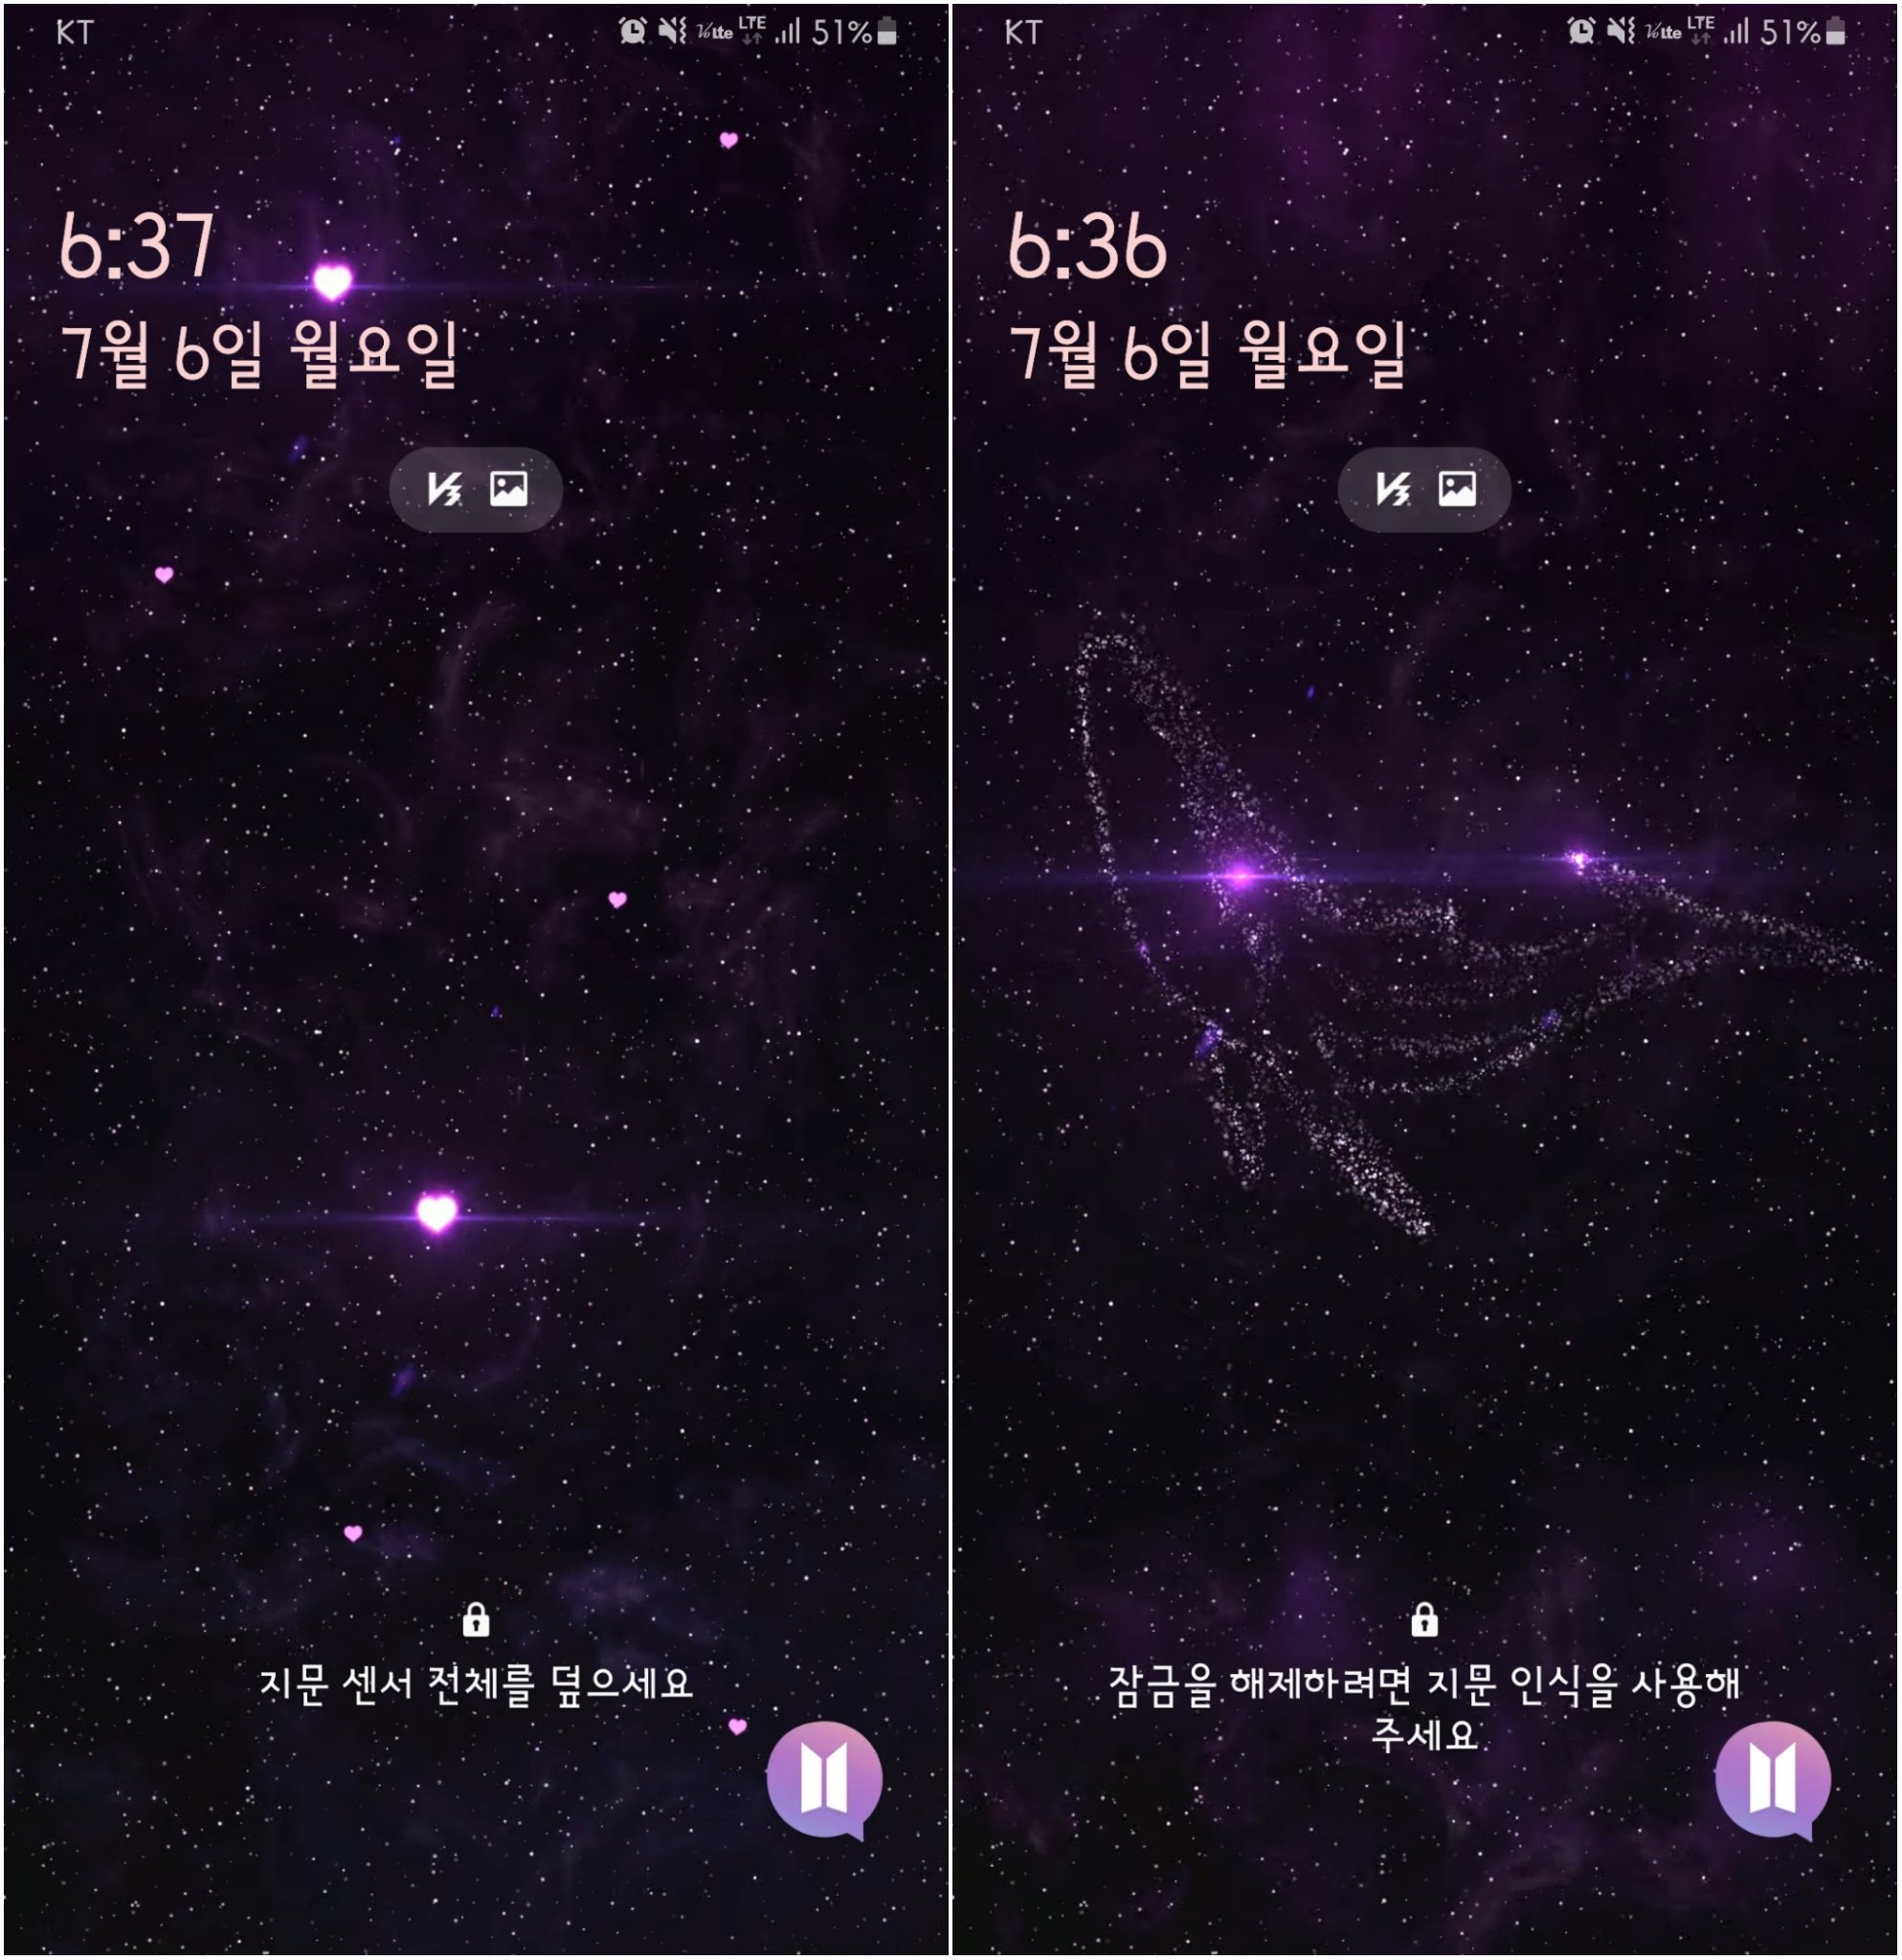 Hiatus 아미살롱 ᴀʀᴍʏ Sᴀʟᴏɴ On Twitter You Can Get Bts Smart Buds Cover On Your Galaxy Phone It S Like One Of Galaxy Themes My Phone Is Galaxy 9 And I Could Use It